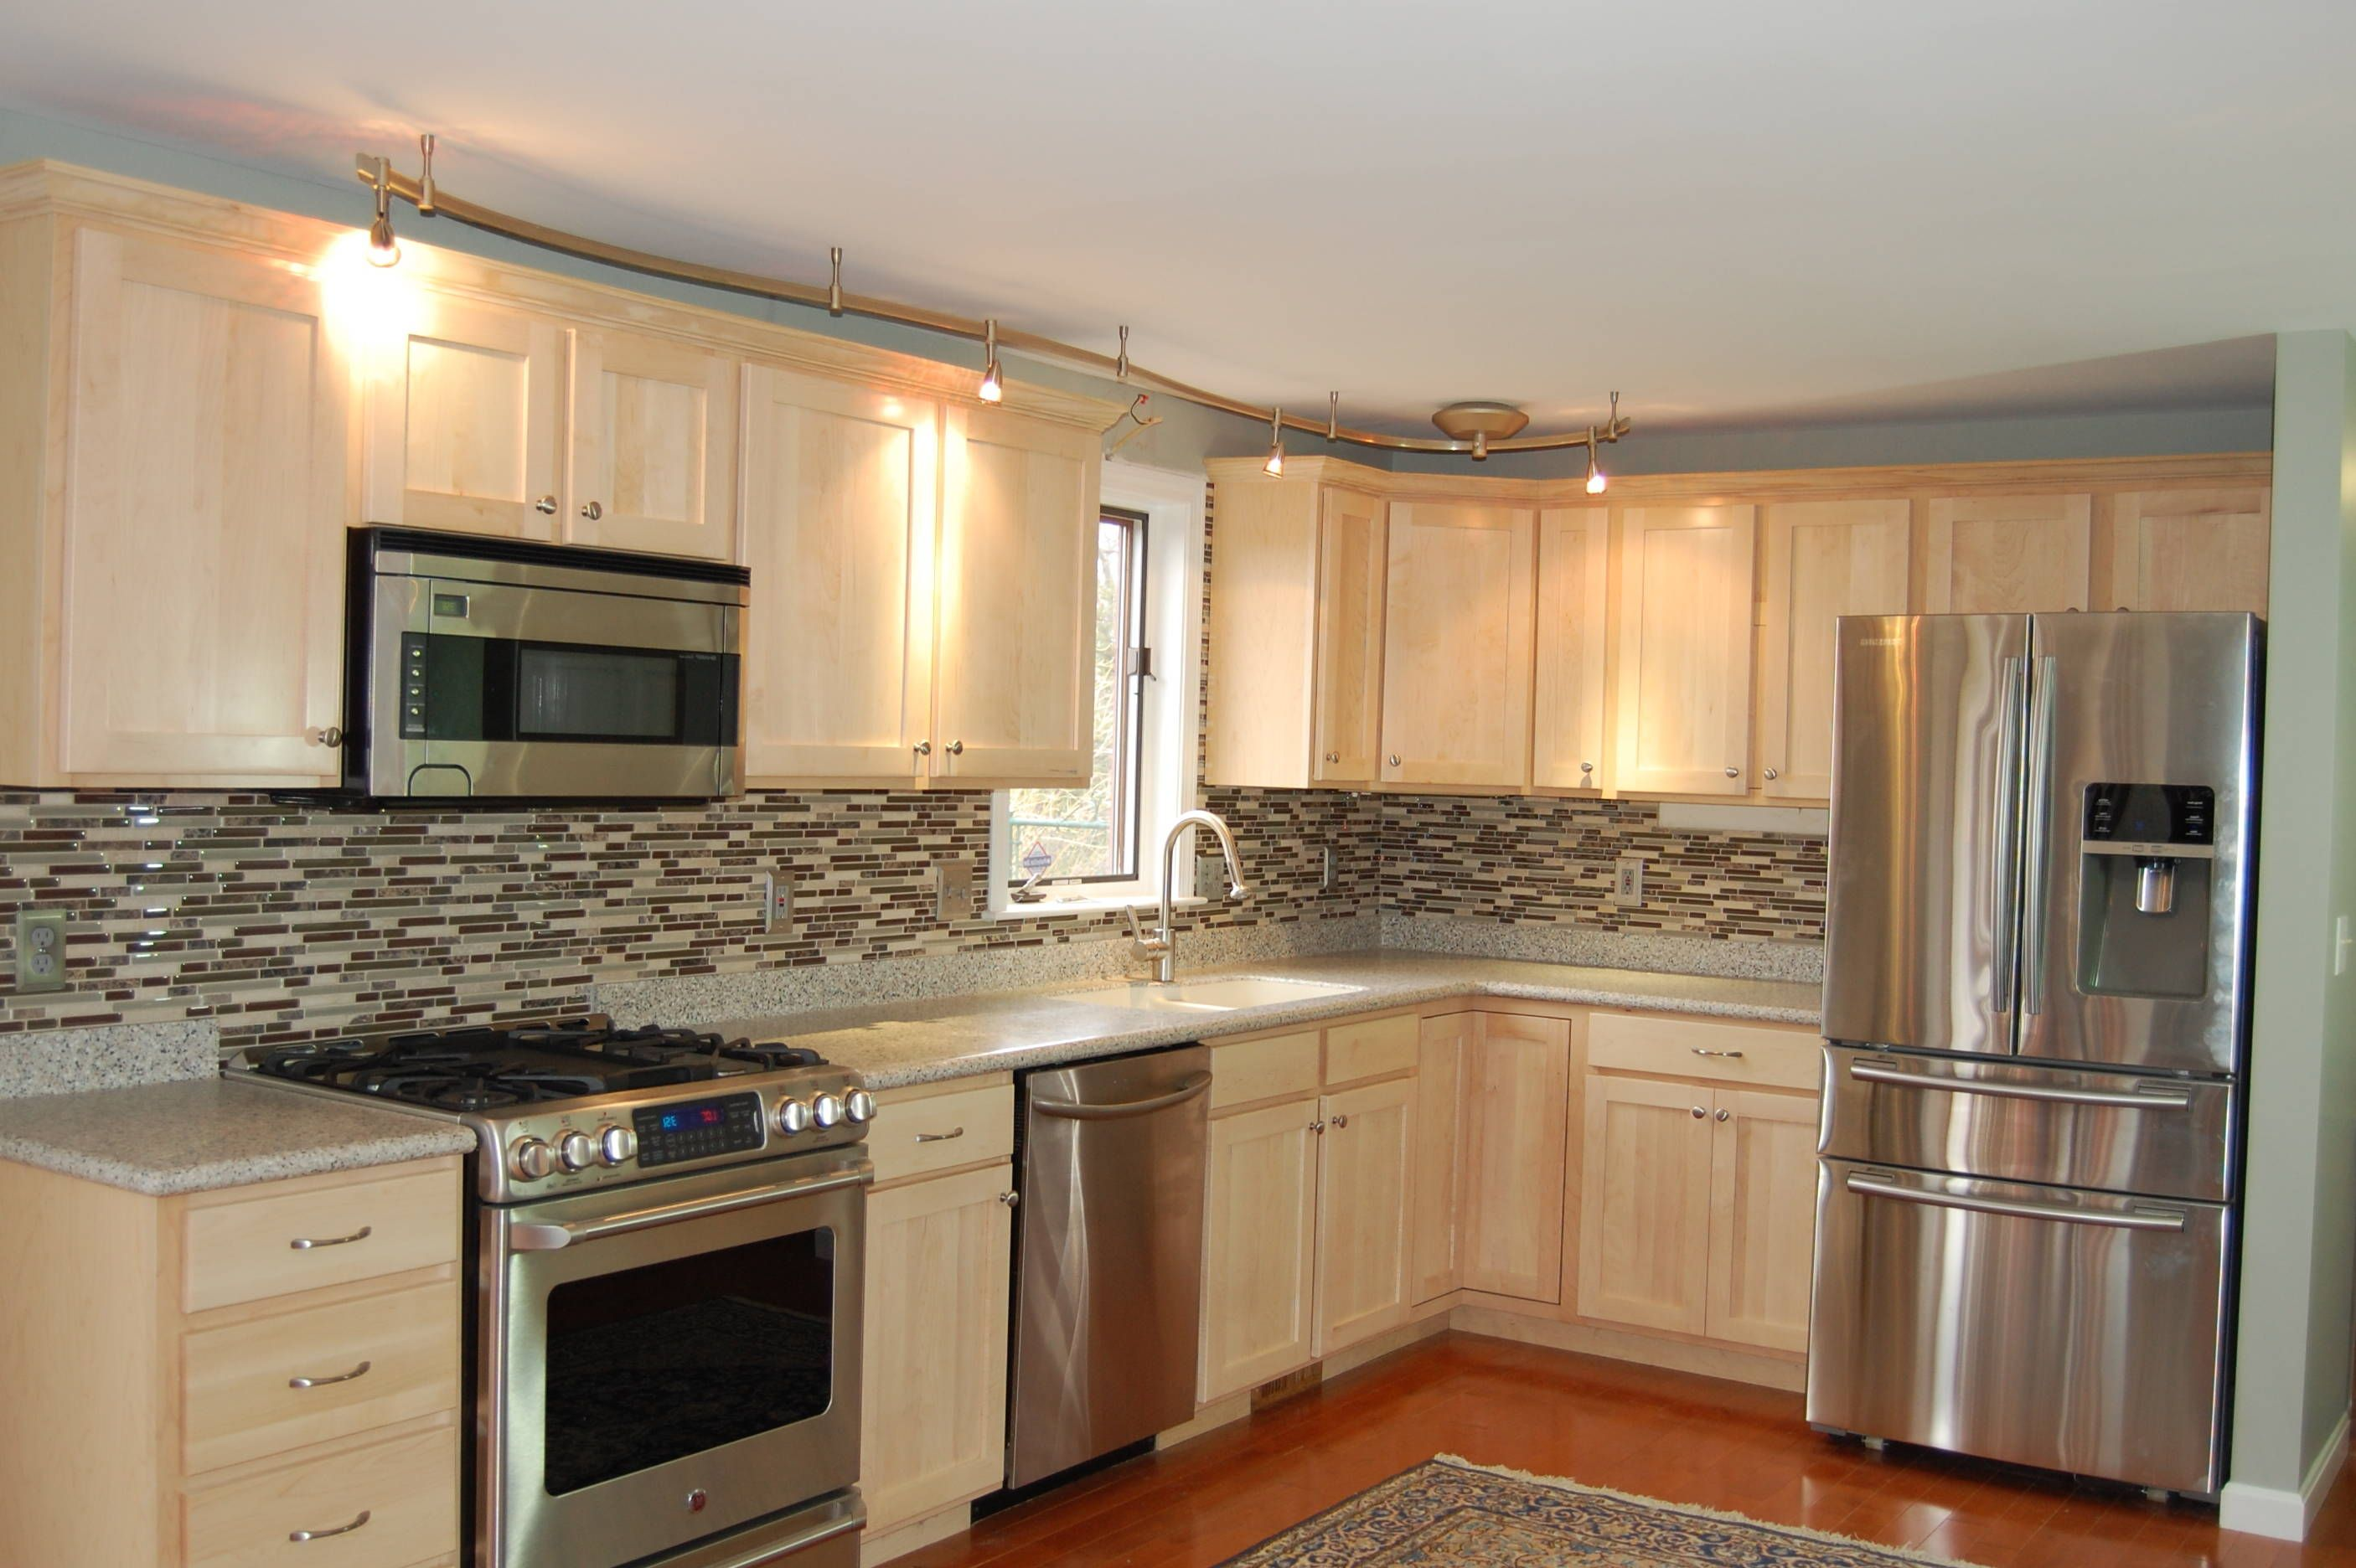 Refinishing Kitchen Cabinets Cost Simple Kitchen Astonishing Kitchen Cabinet Refacing Cost For From . Design Inspiration